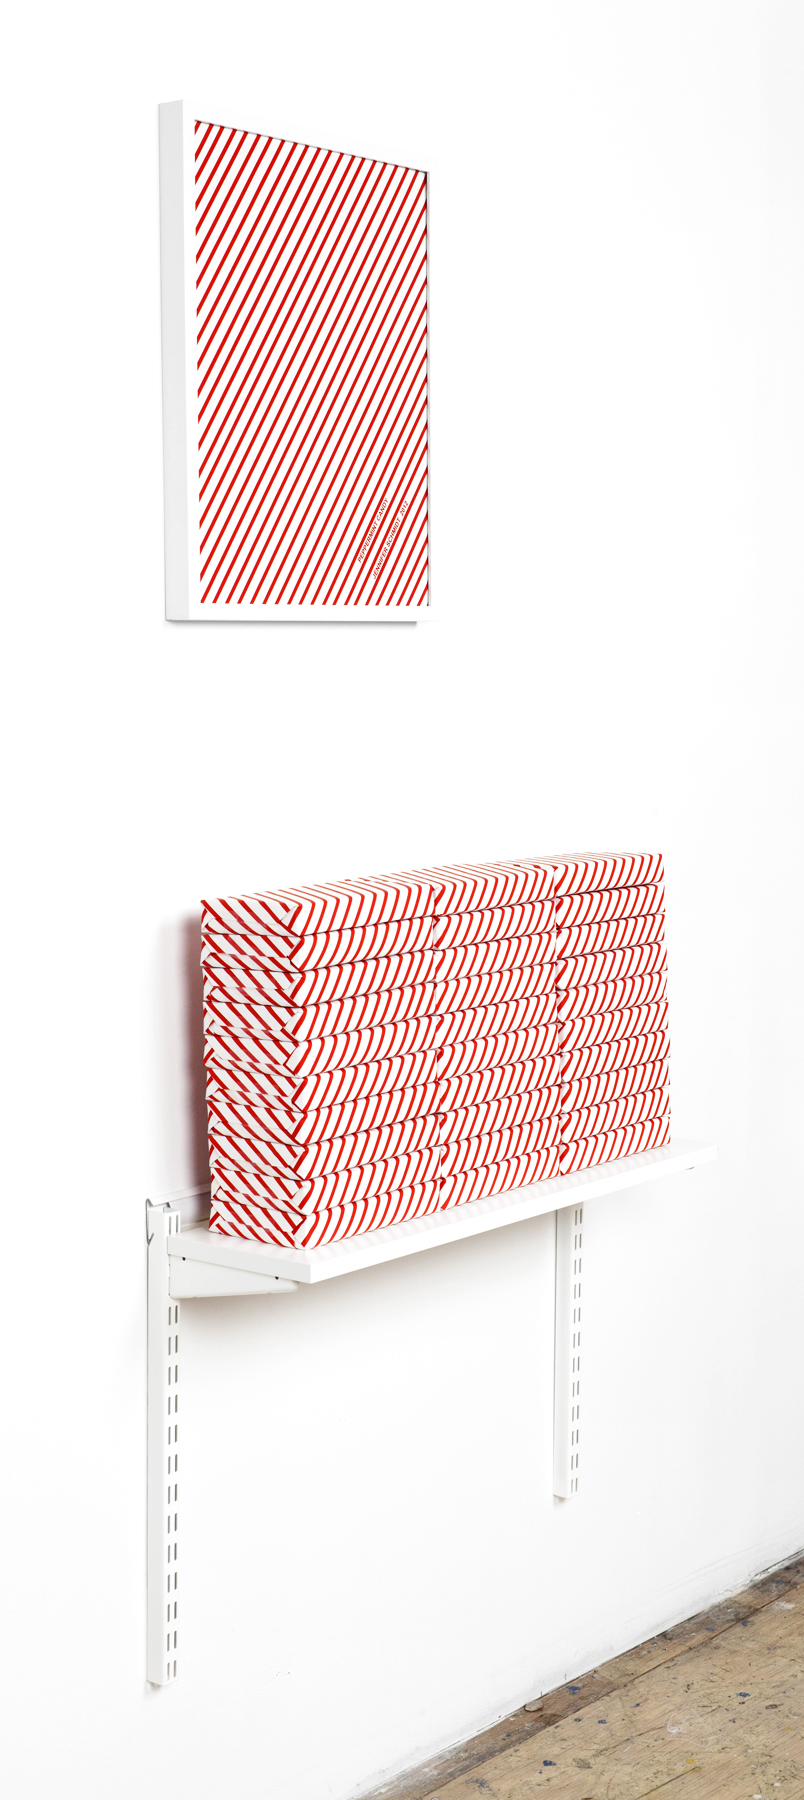 Peppermint Candy - 2013